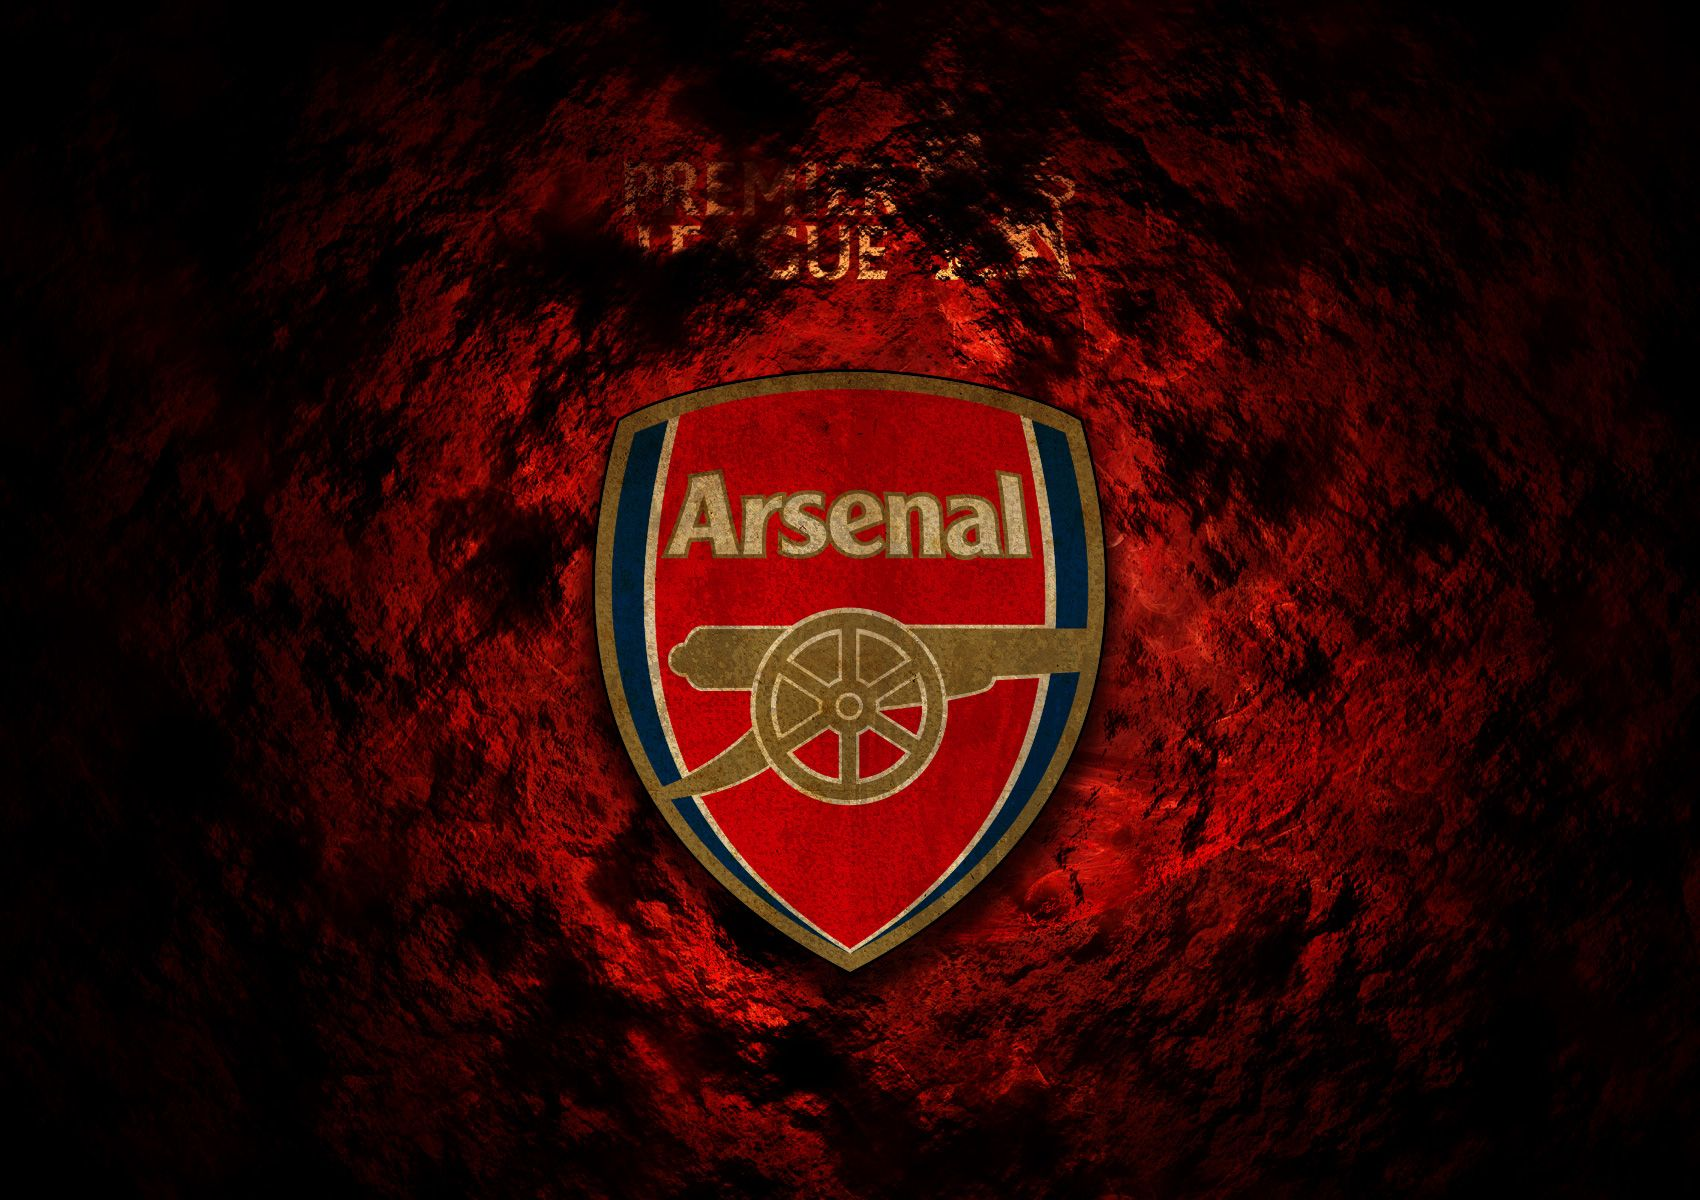 Arsenal Wallpaper Desktop #h27363684, 274.22 Kb